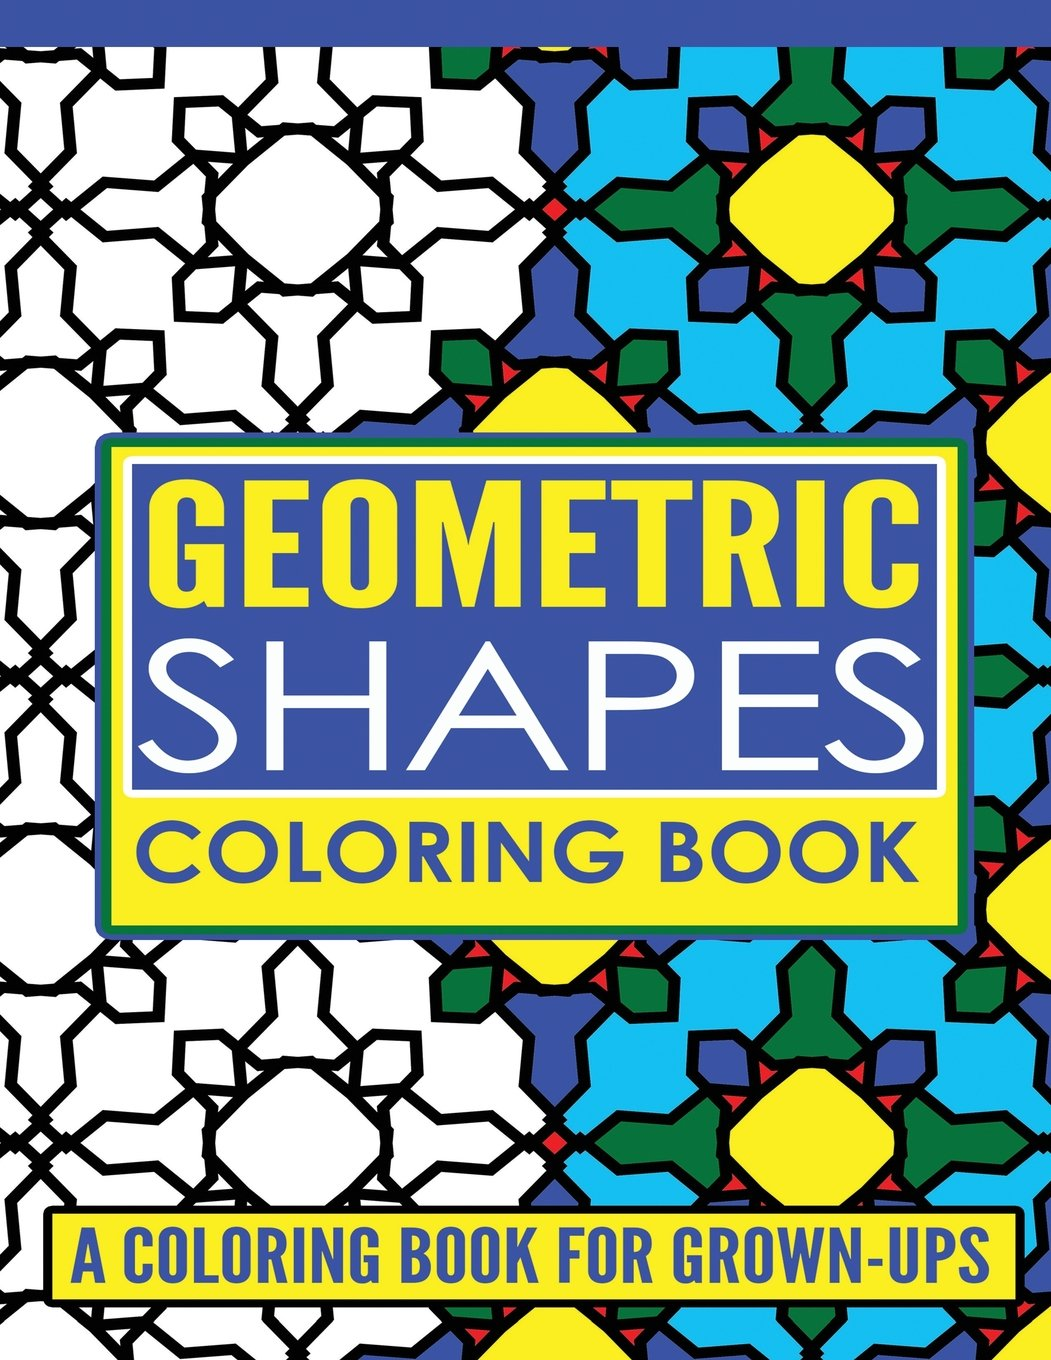 Amazon Geometric Shapes Adult Coloring Book A Coloring